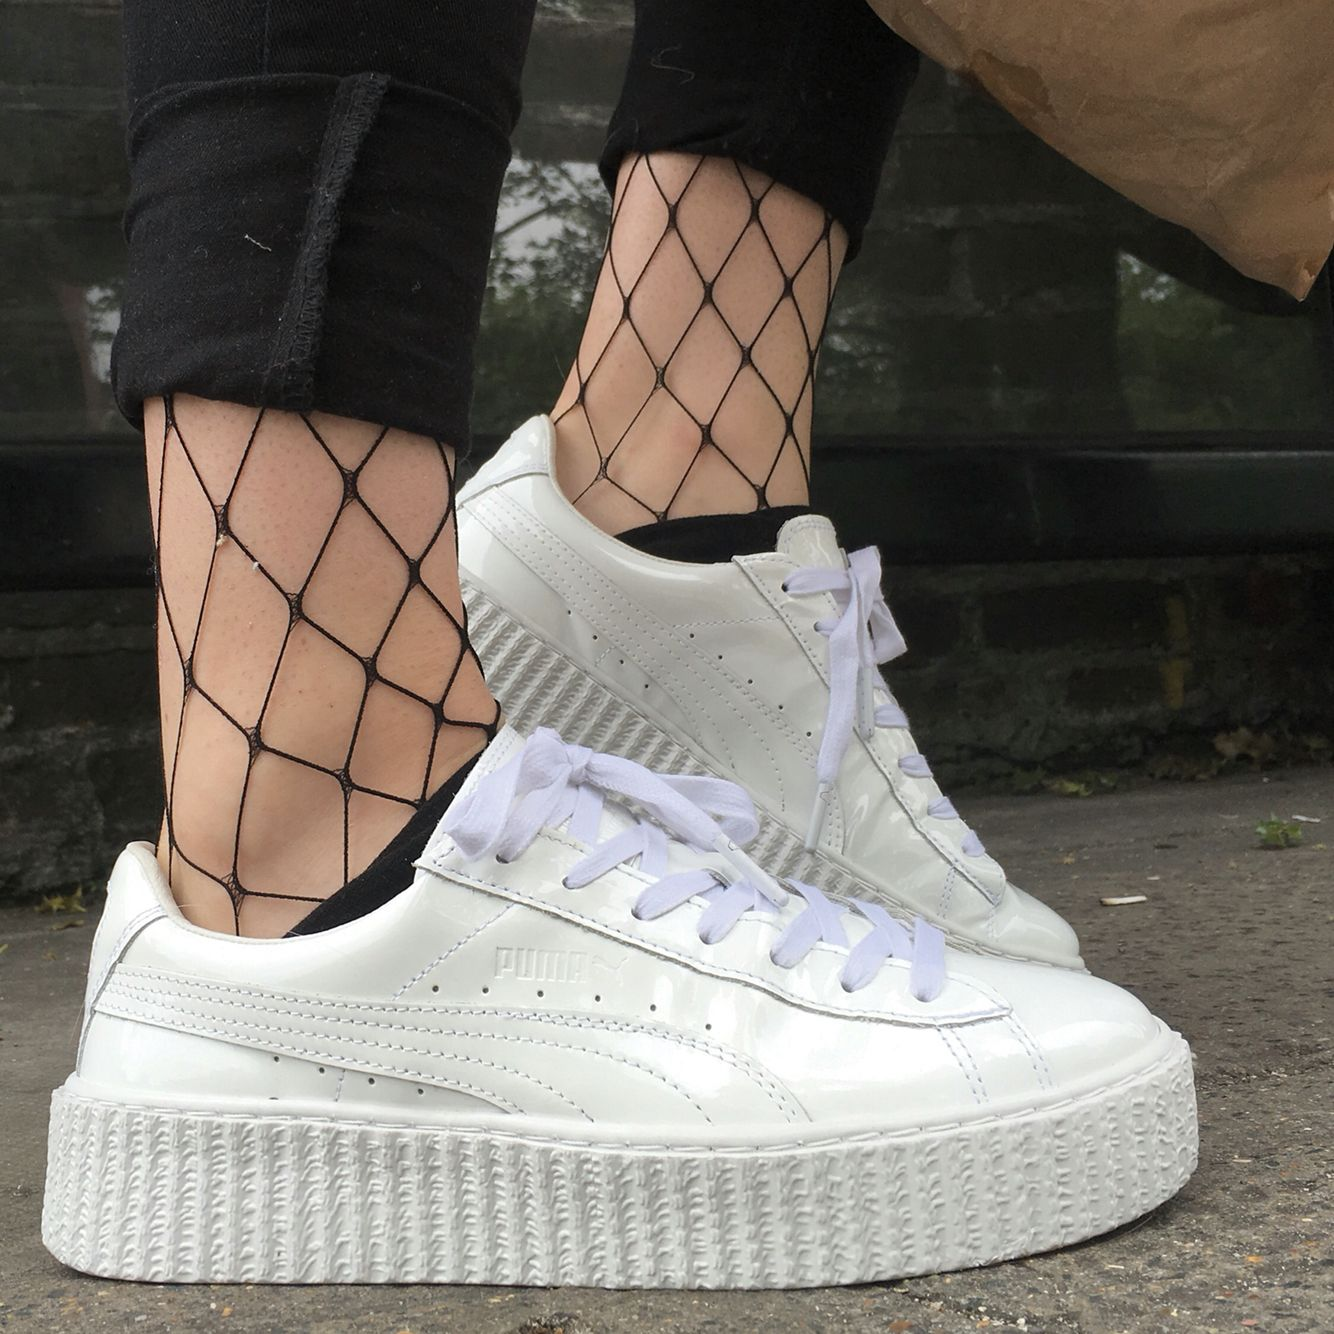 6eef15ea1 'georgiagordon' on Instagram wearing her FENTY Puma's by Rihanna with fence  net tights. Follow her @ georgiagordon on insta